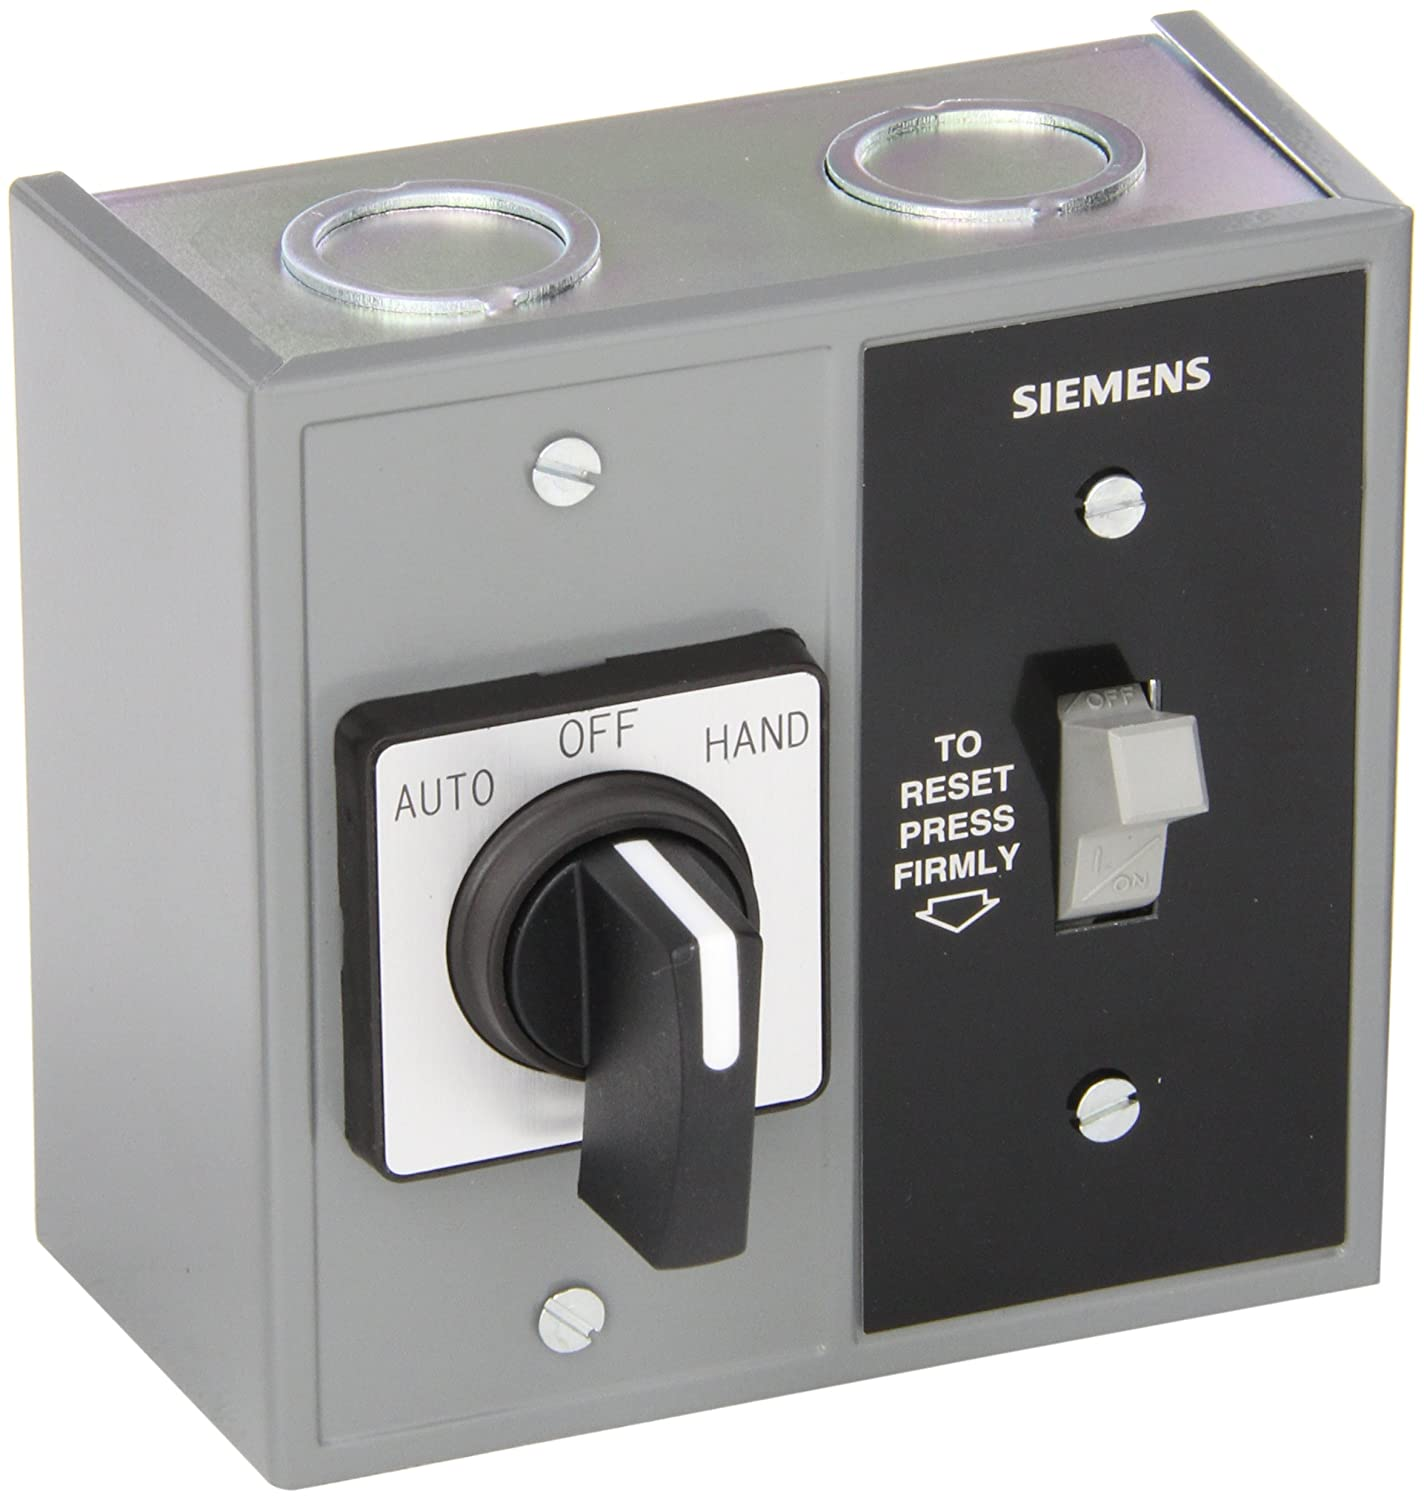 Siemens Smffg71 Fractional Hp Starter Auto Off Hand Spdt Selector Single Phase Motor Switch Nema Type 1 General Purpose Enclosure Surface Mounting